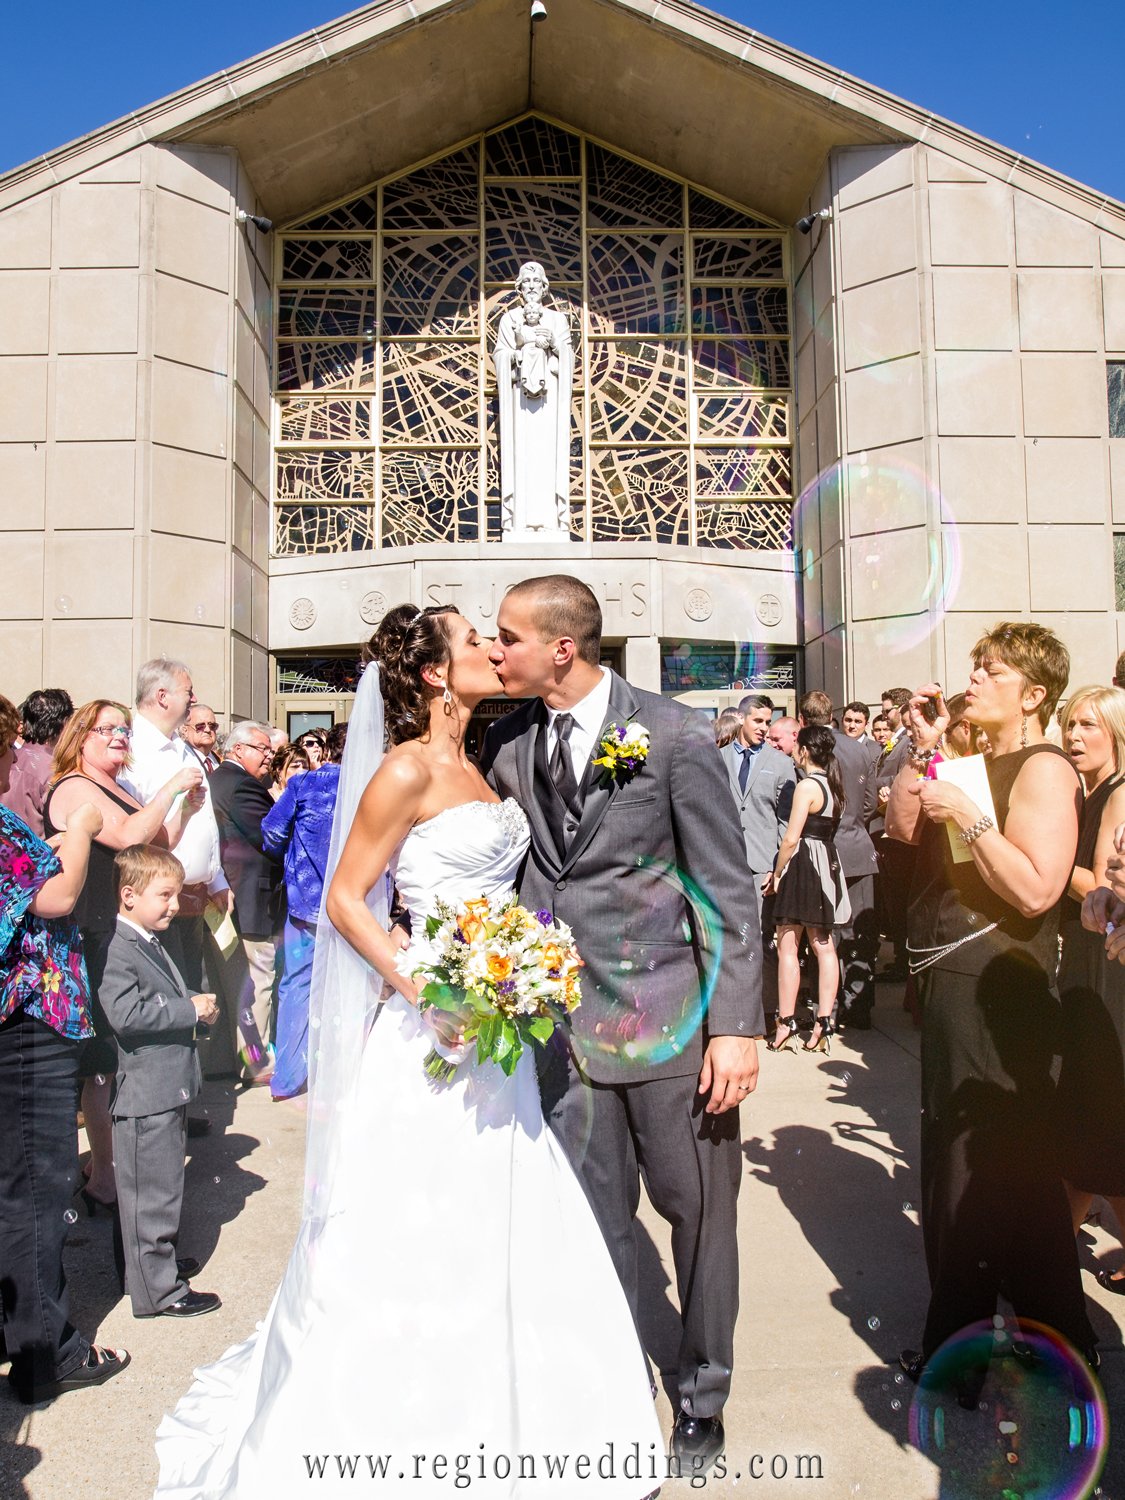 The bride and groom leave church as guests blow bubbles upon them.